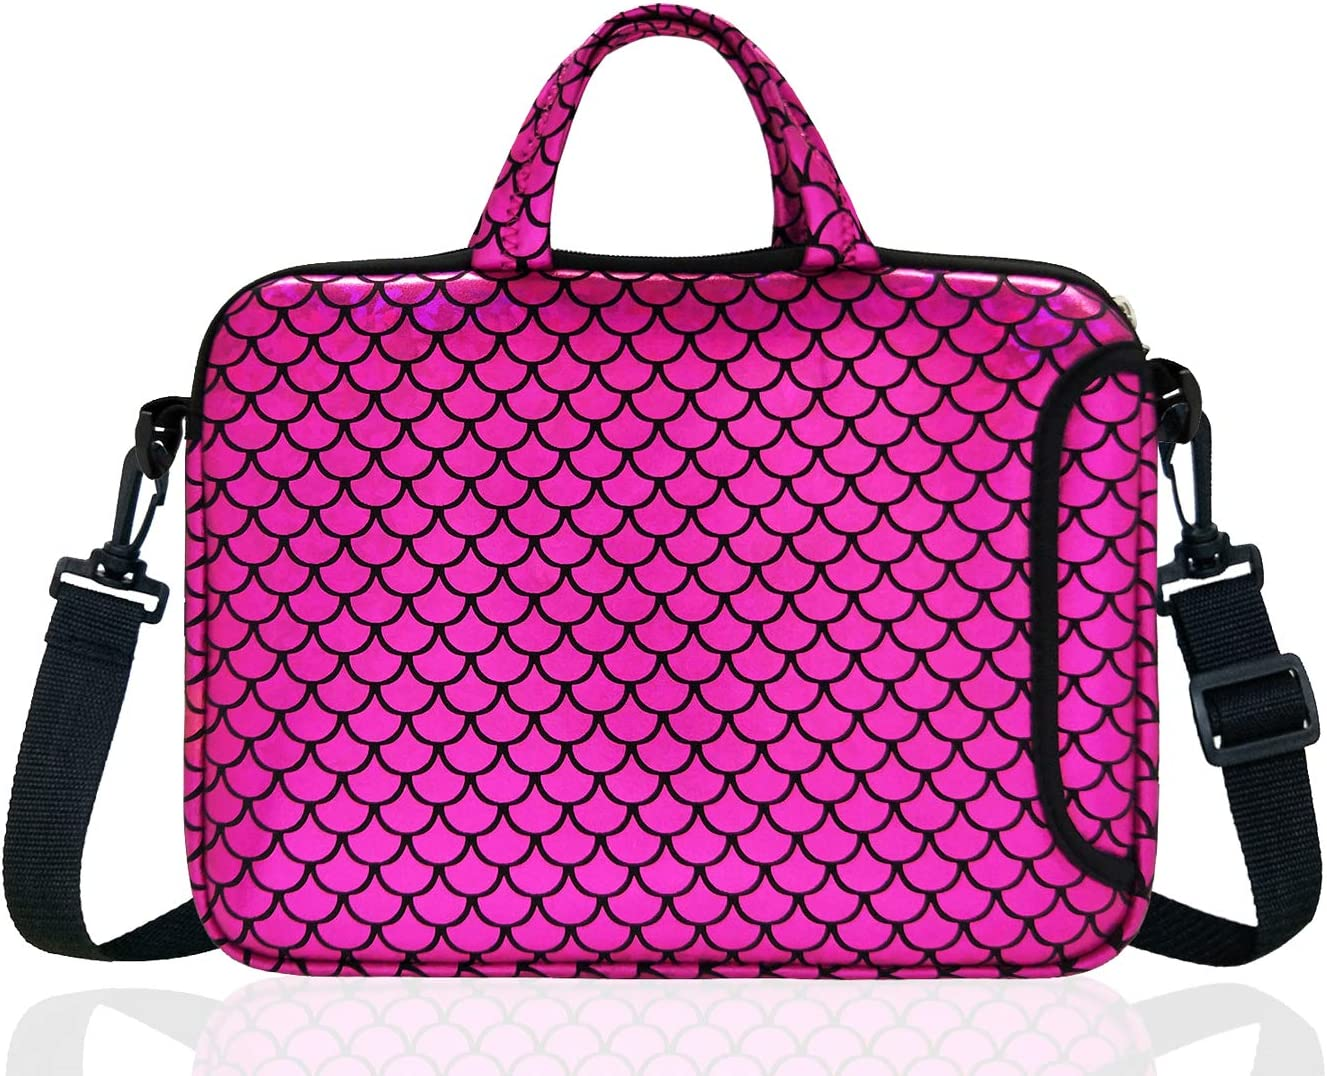 "14-Inch Laptop Shoulder Carrying Bag Case Sleeve For 13"" 13.3"" 14 inch Macbook/Notebook/Ultrabook/Chromebook, Mermaid Scale (Purple)"